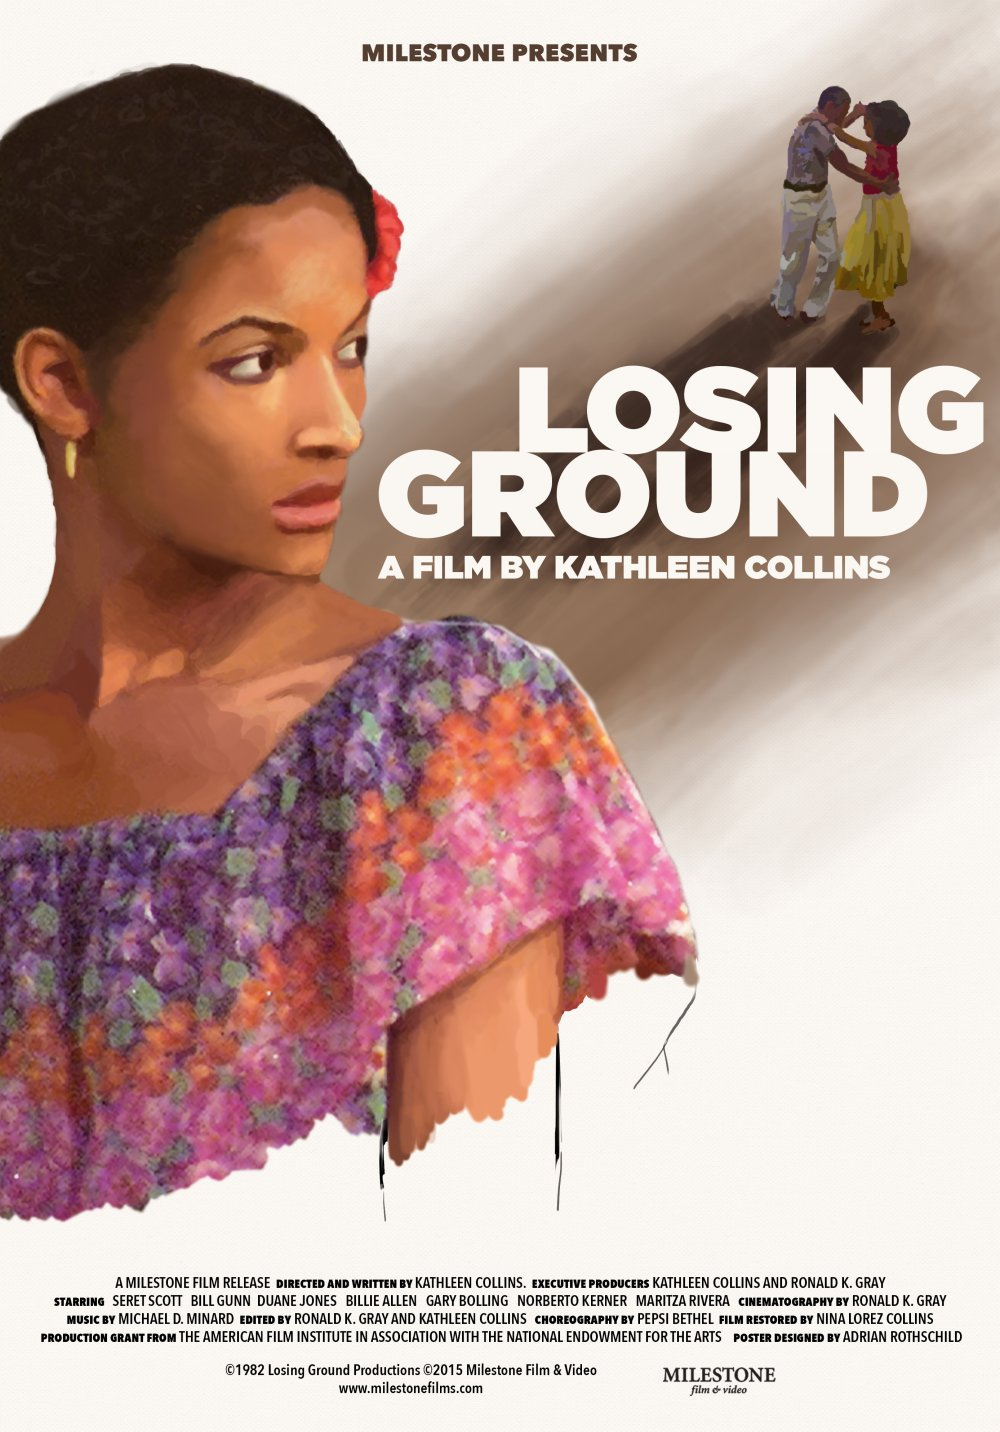 Milestone's 2015 home-cinema release poster for Losing Ground